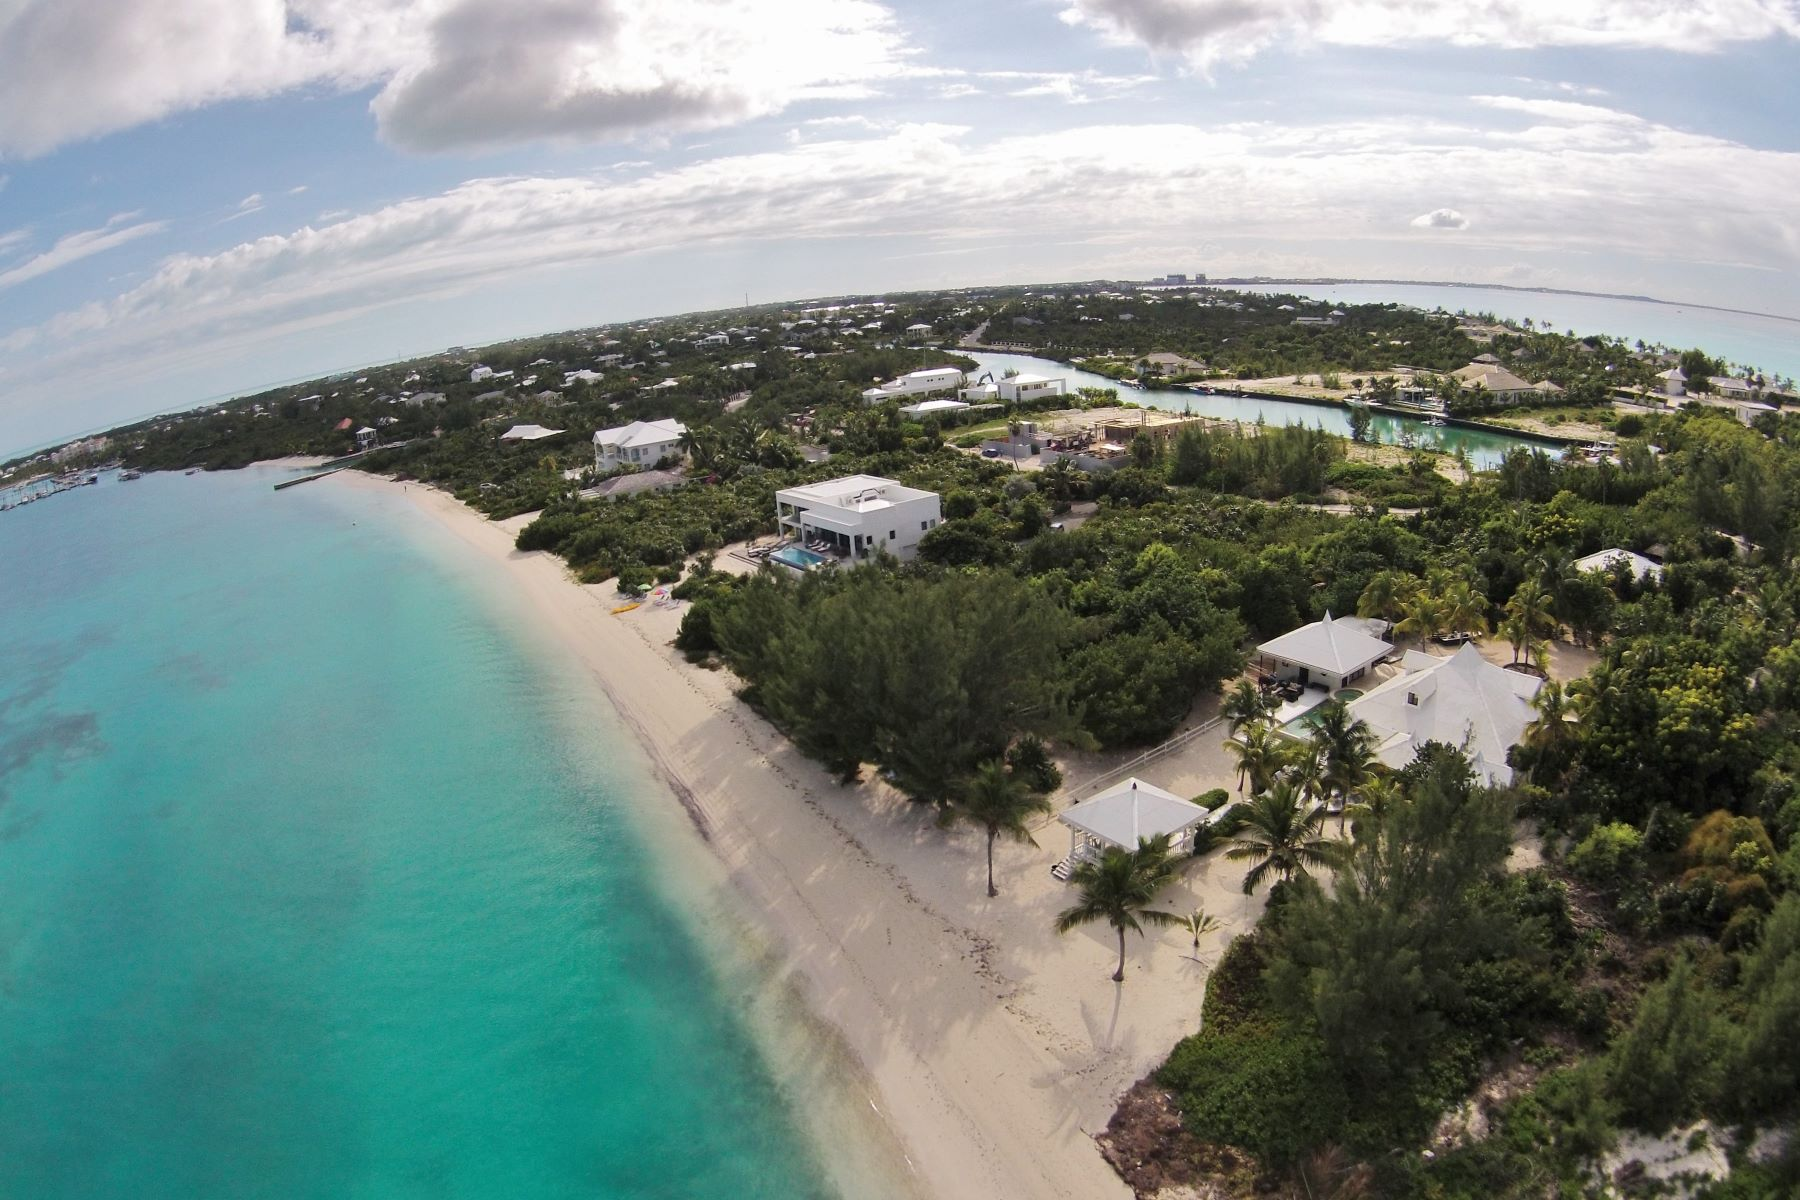 Property for Sale at Leeward, Providenciales Turks And Caicos Islands